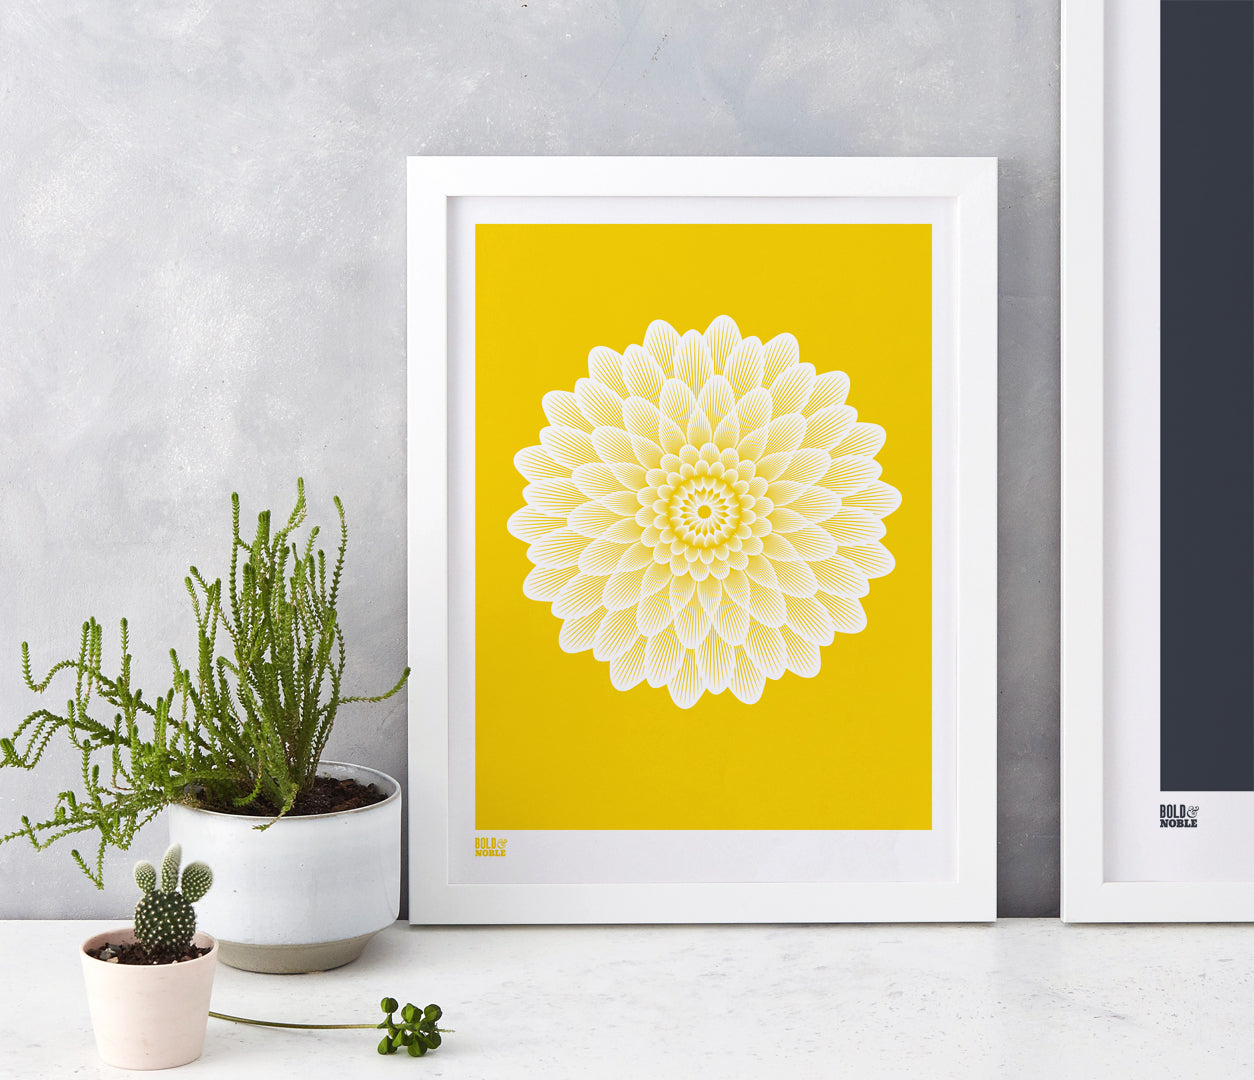 Pictures and Wall Art, Screen Printed Dahlia Waterlily in Bright Yellow